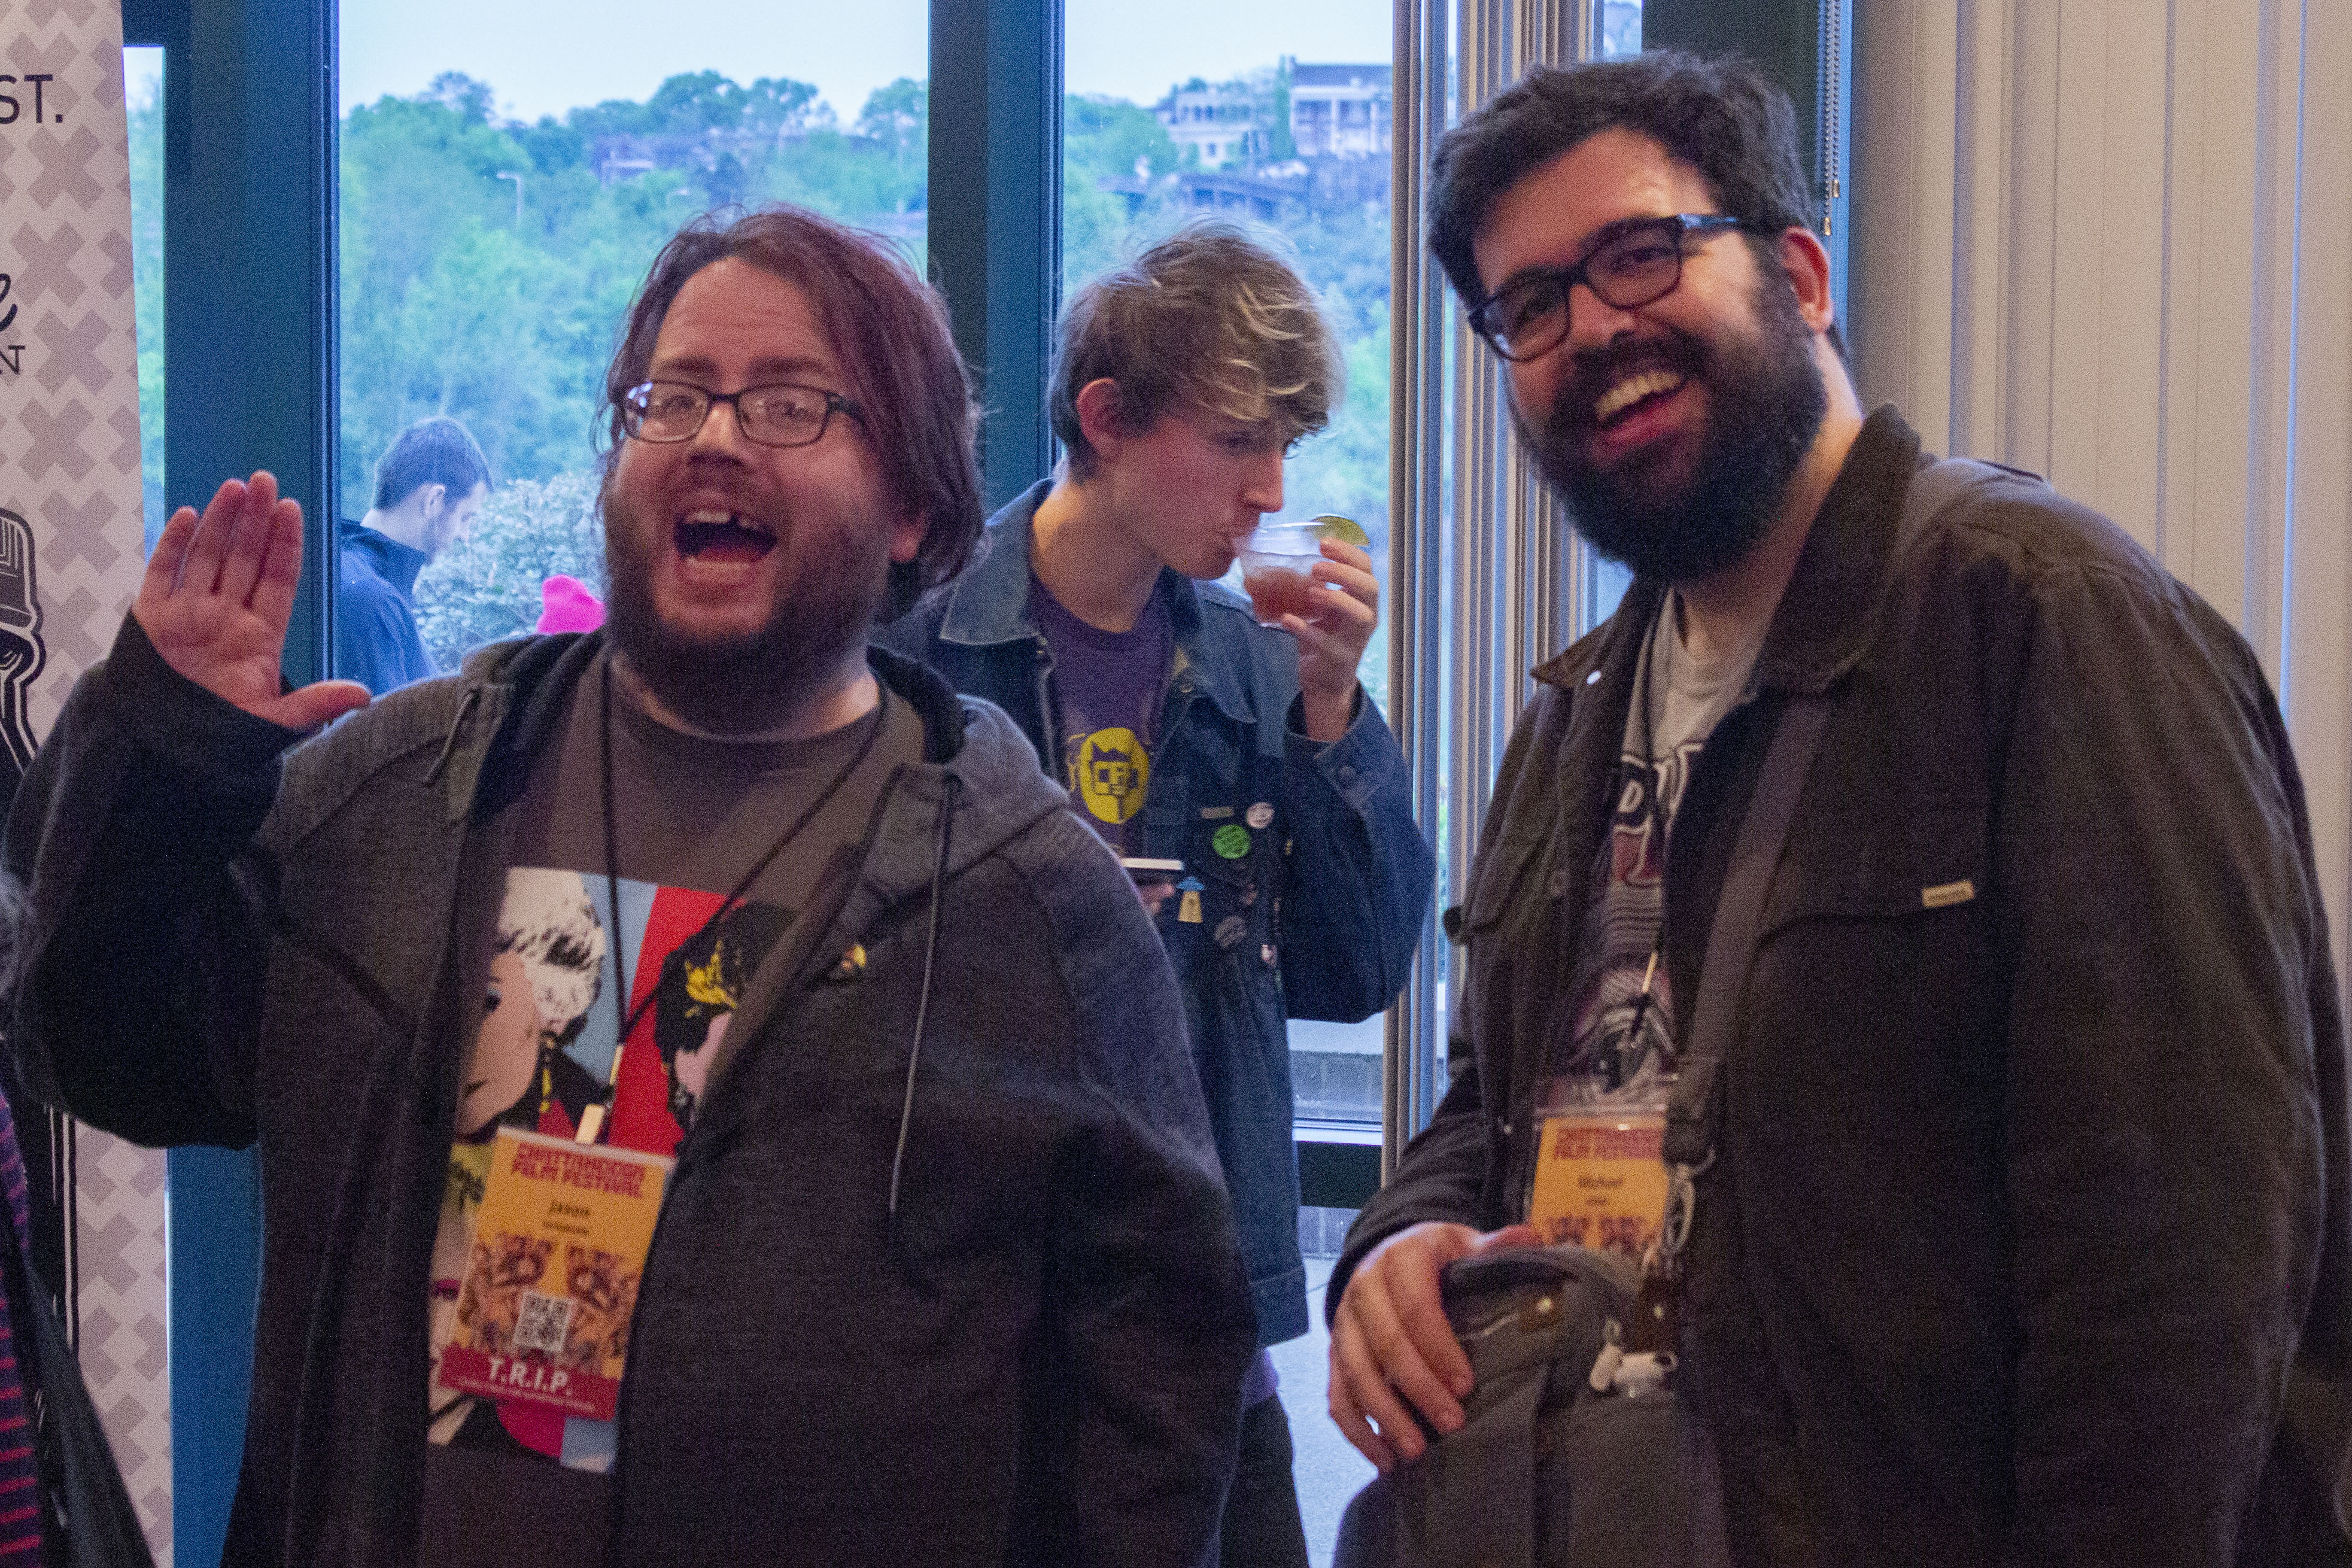 <p>Chattanooga Film Festival 2019</p><p>Staff Photo By Dustin Kramer</p>